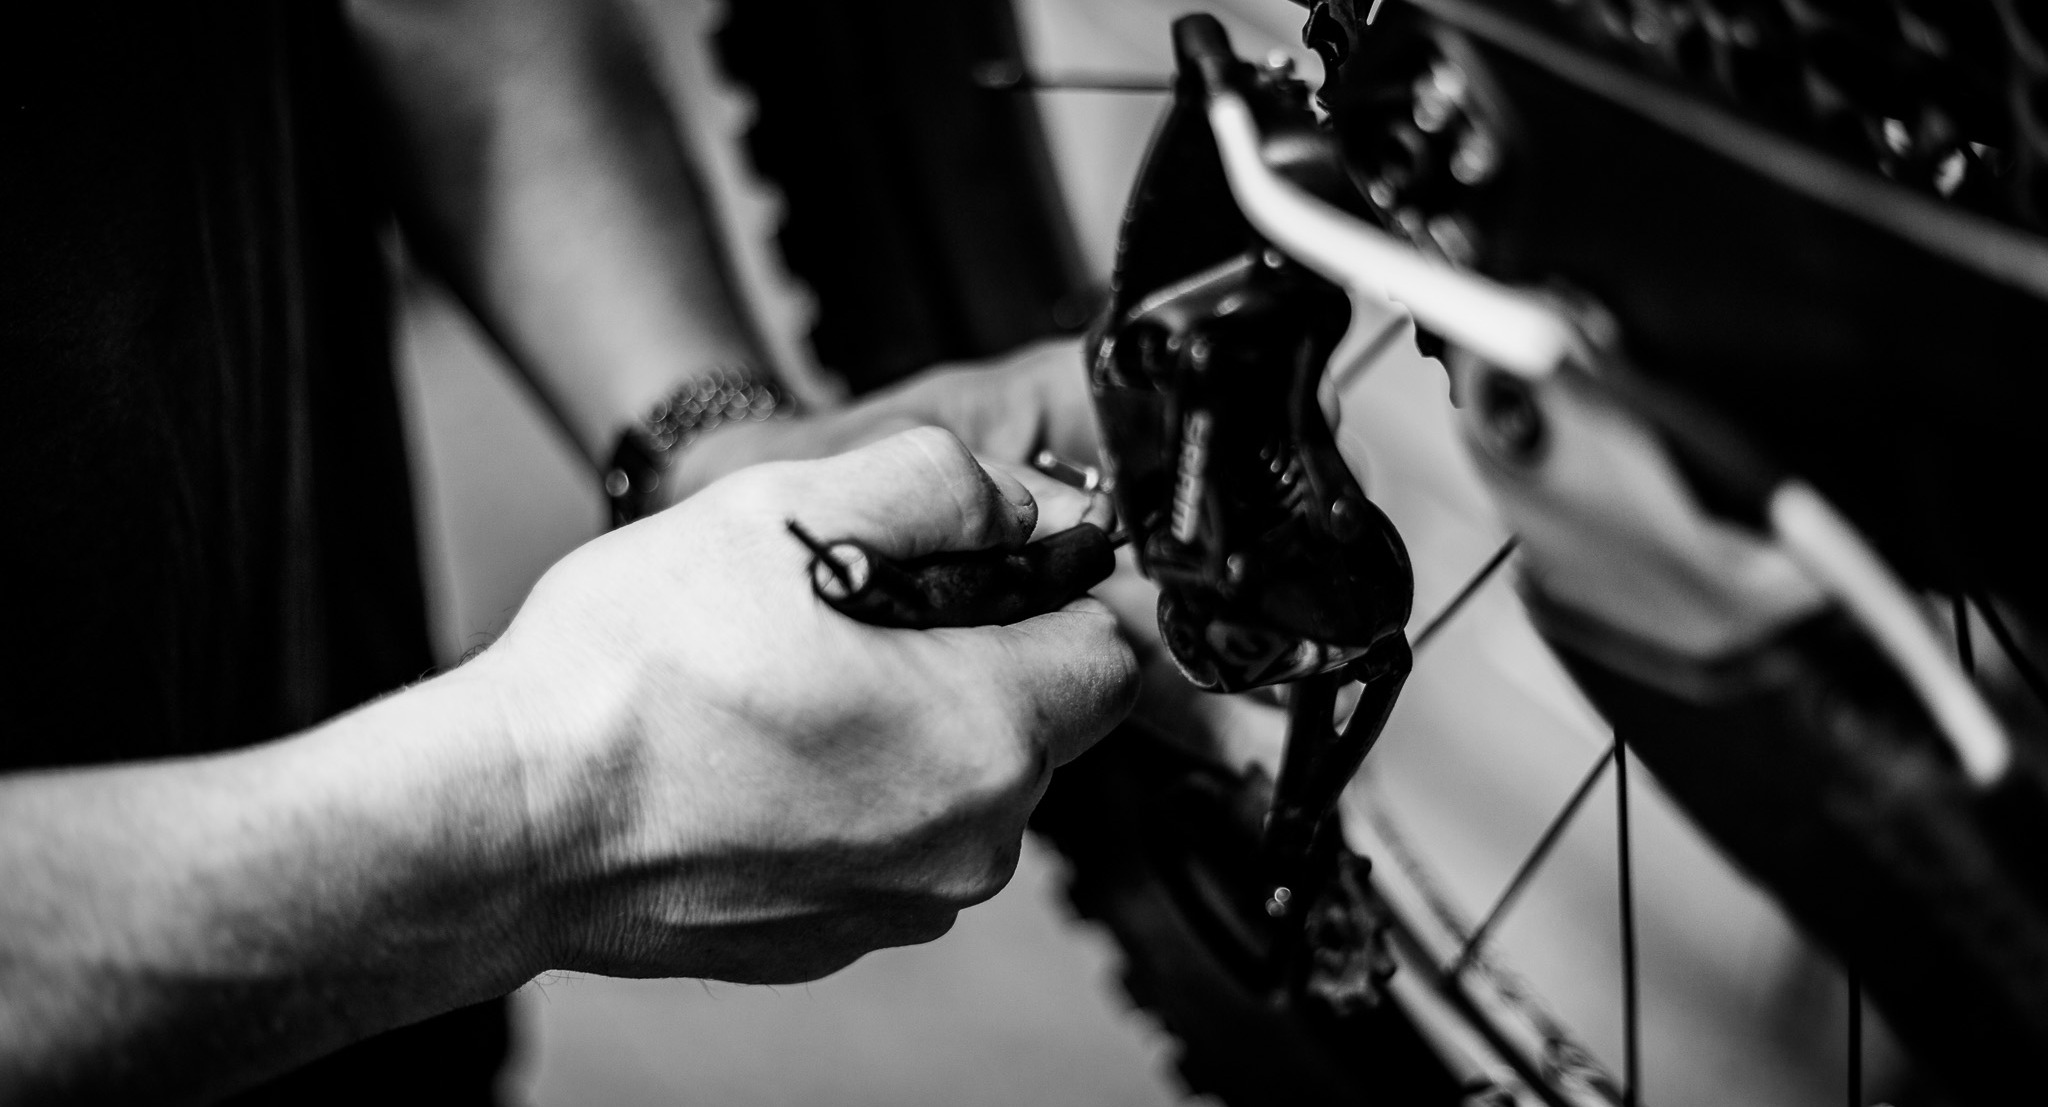 Bike Technician working on a bike